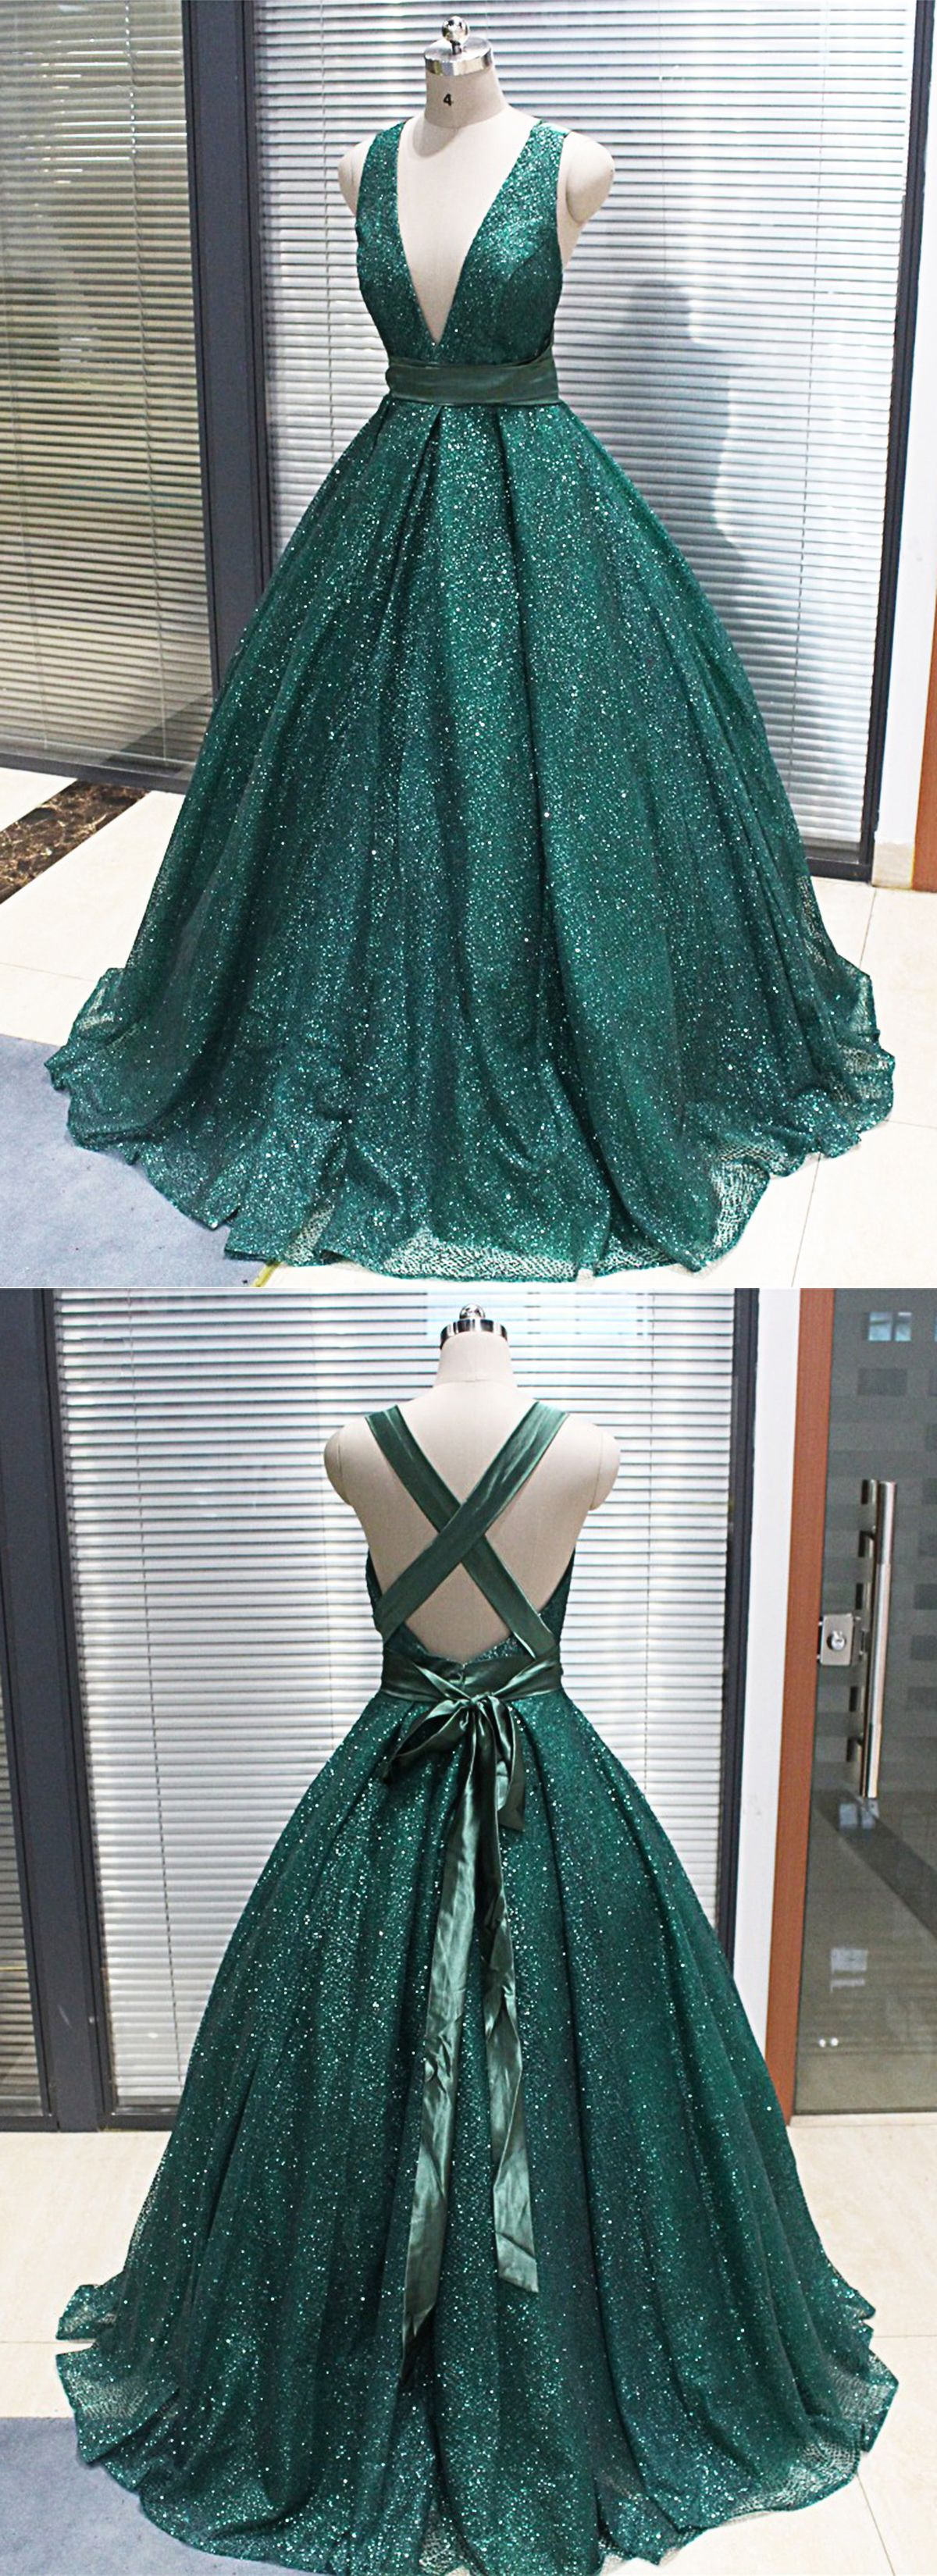 green sparkly dress long